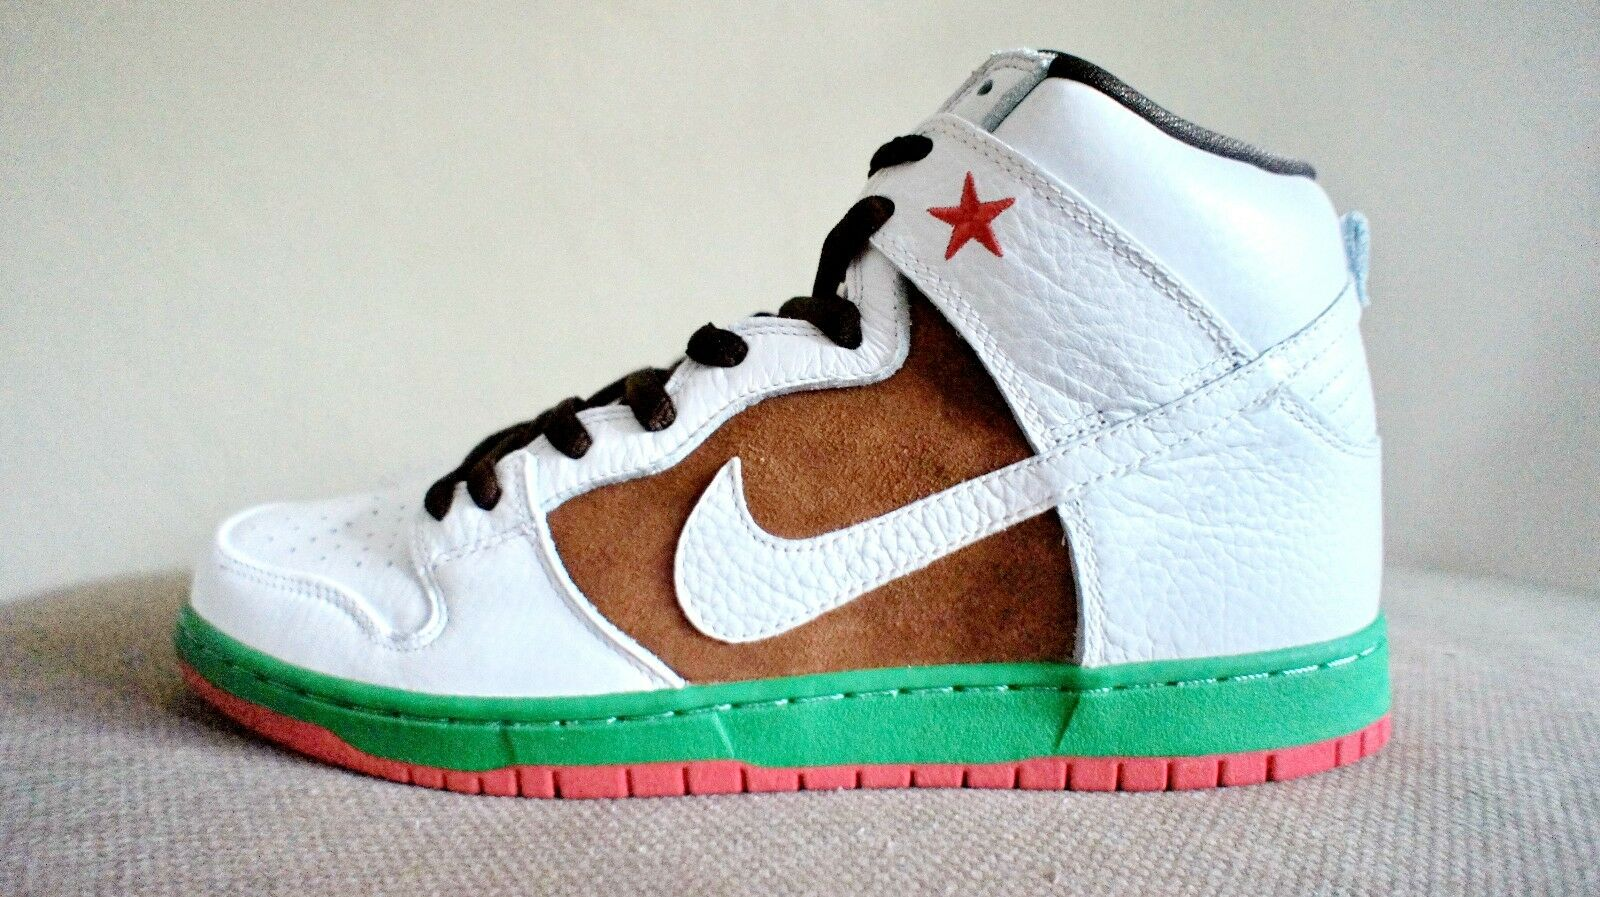 New DS Nike Dunk High Premium SB Pecan White Cali 31st State men sz 11 12 or 13